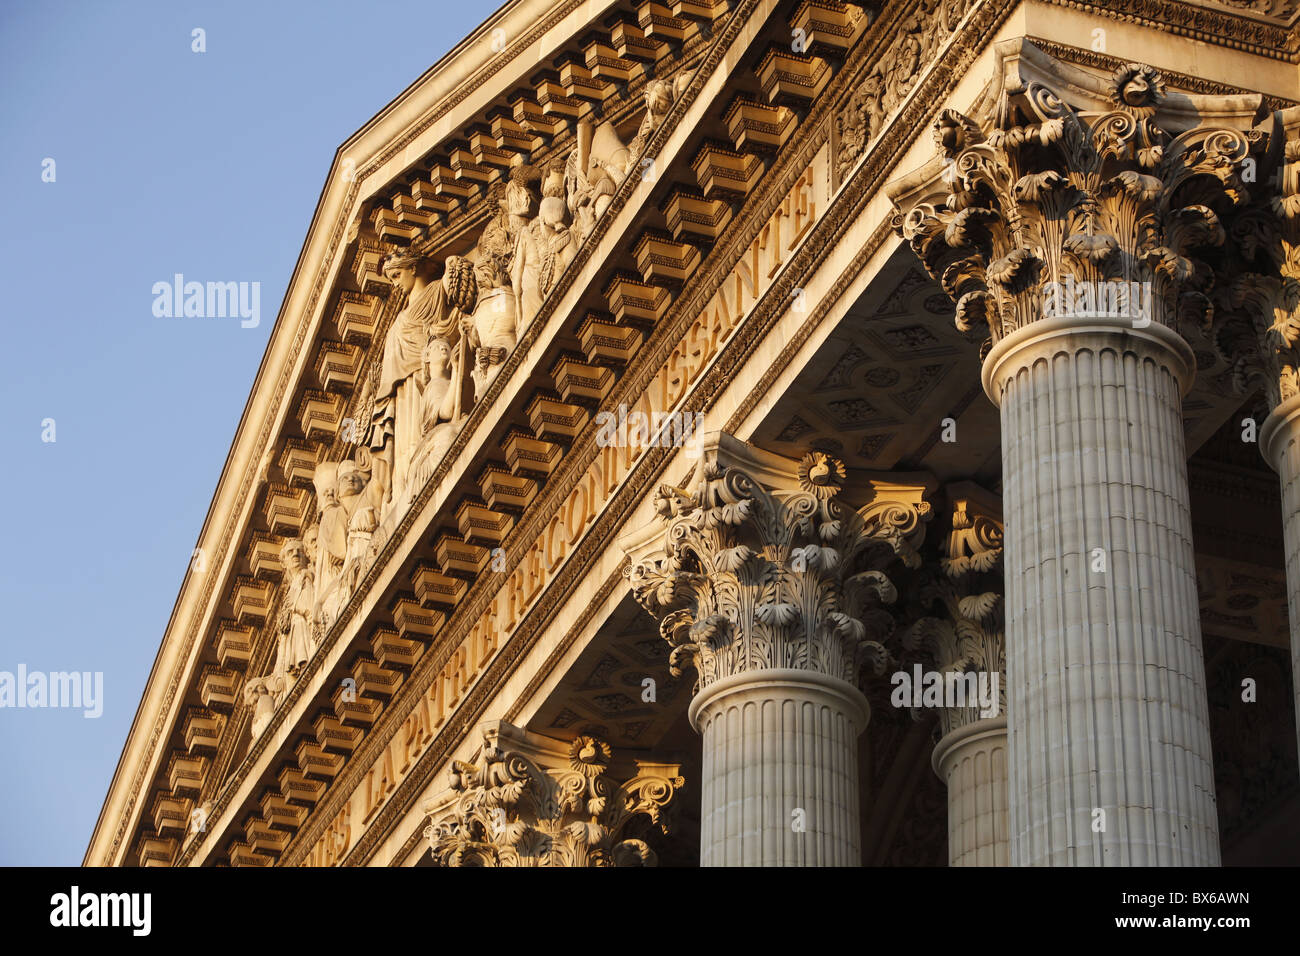 Pediment and Corinthian columns of the Pantheon, Paris, France, Europe Stock Photo